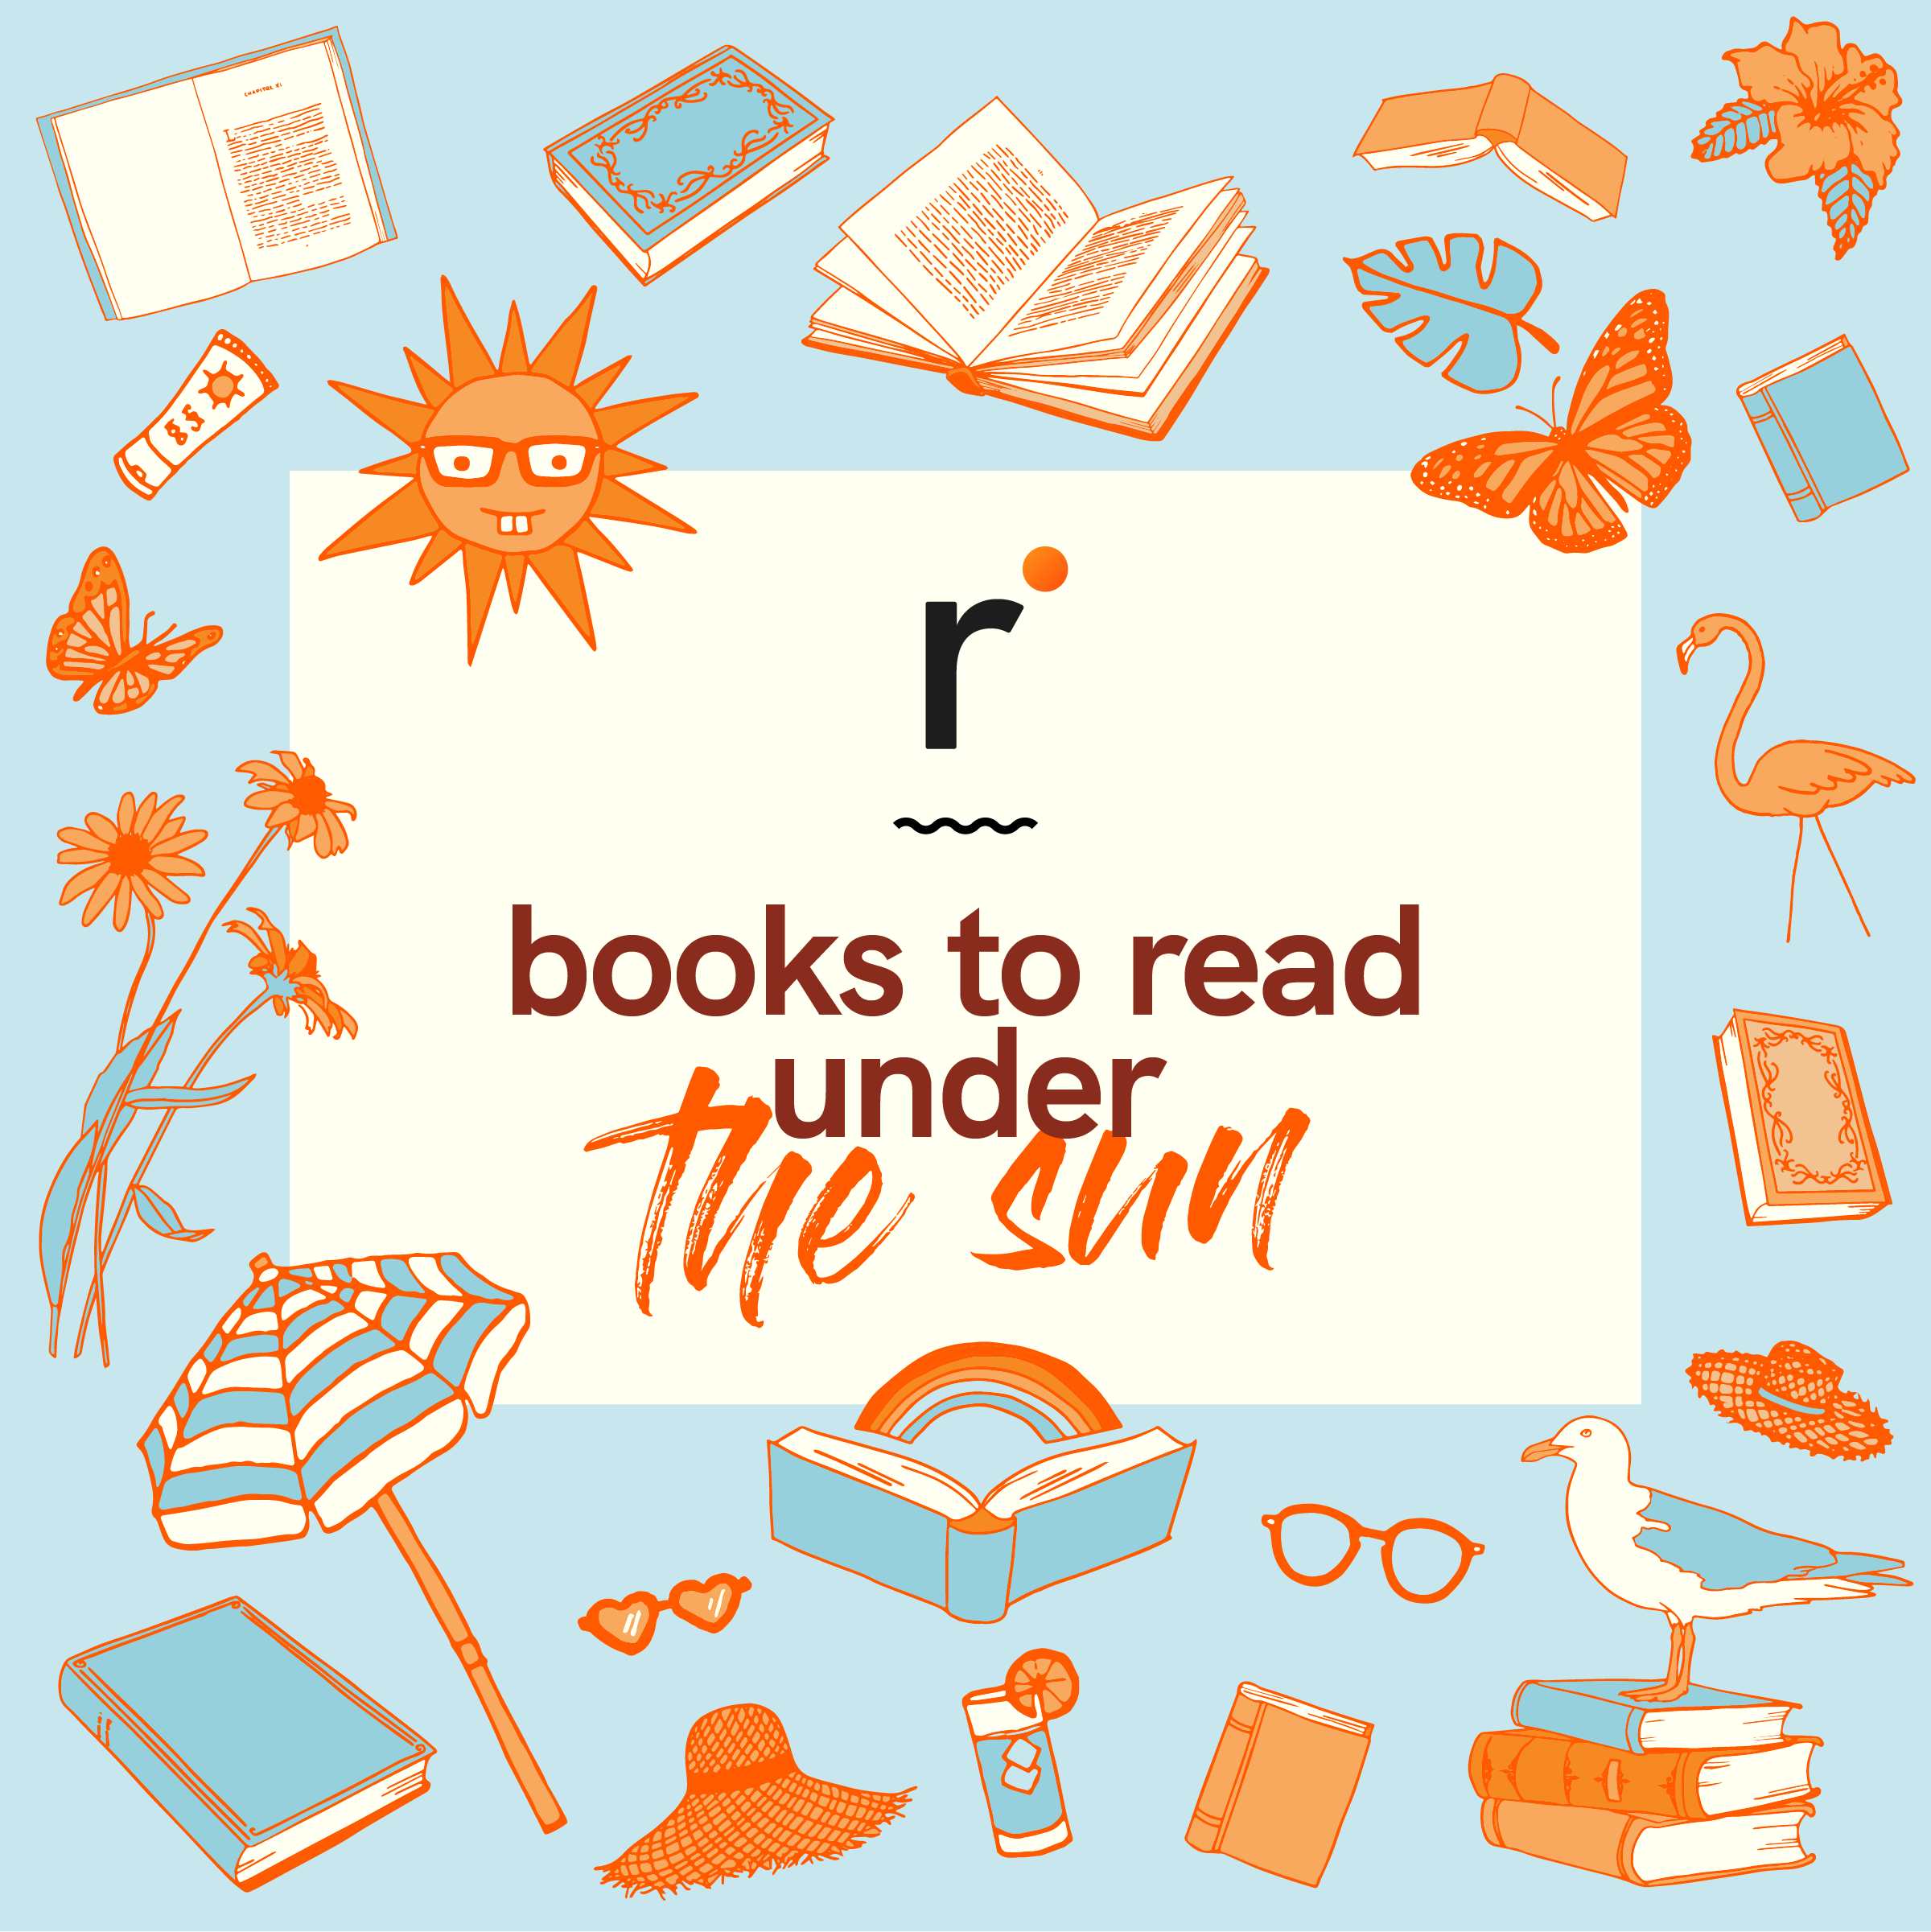 Books to read under the sun